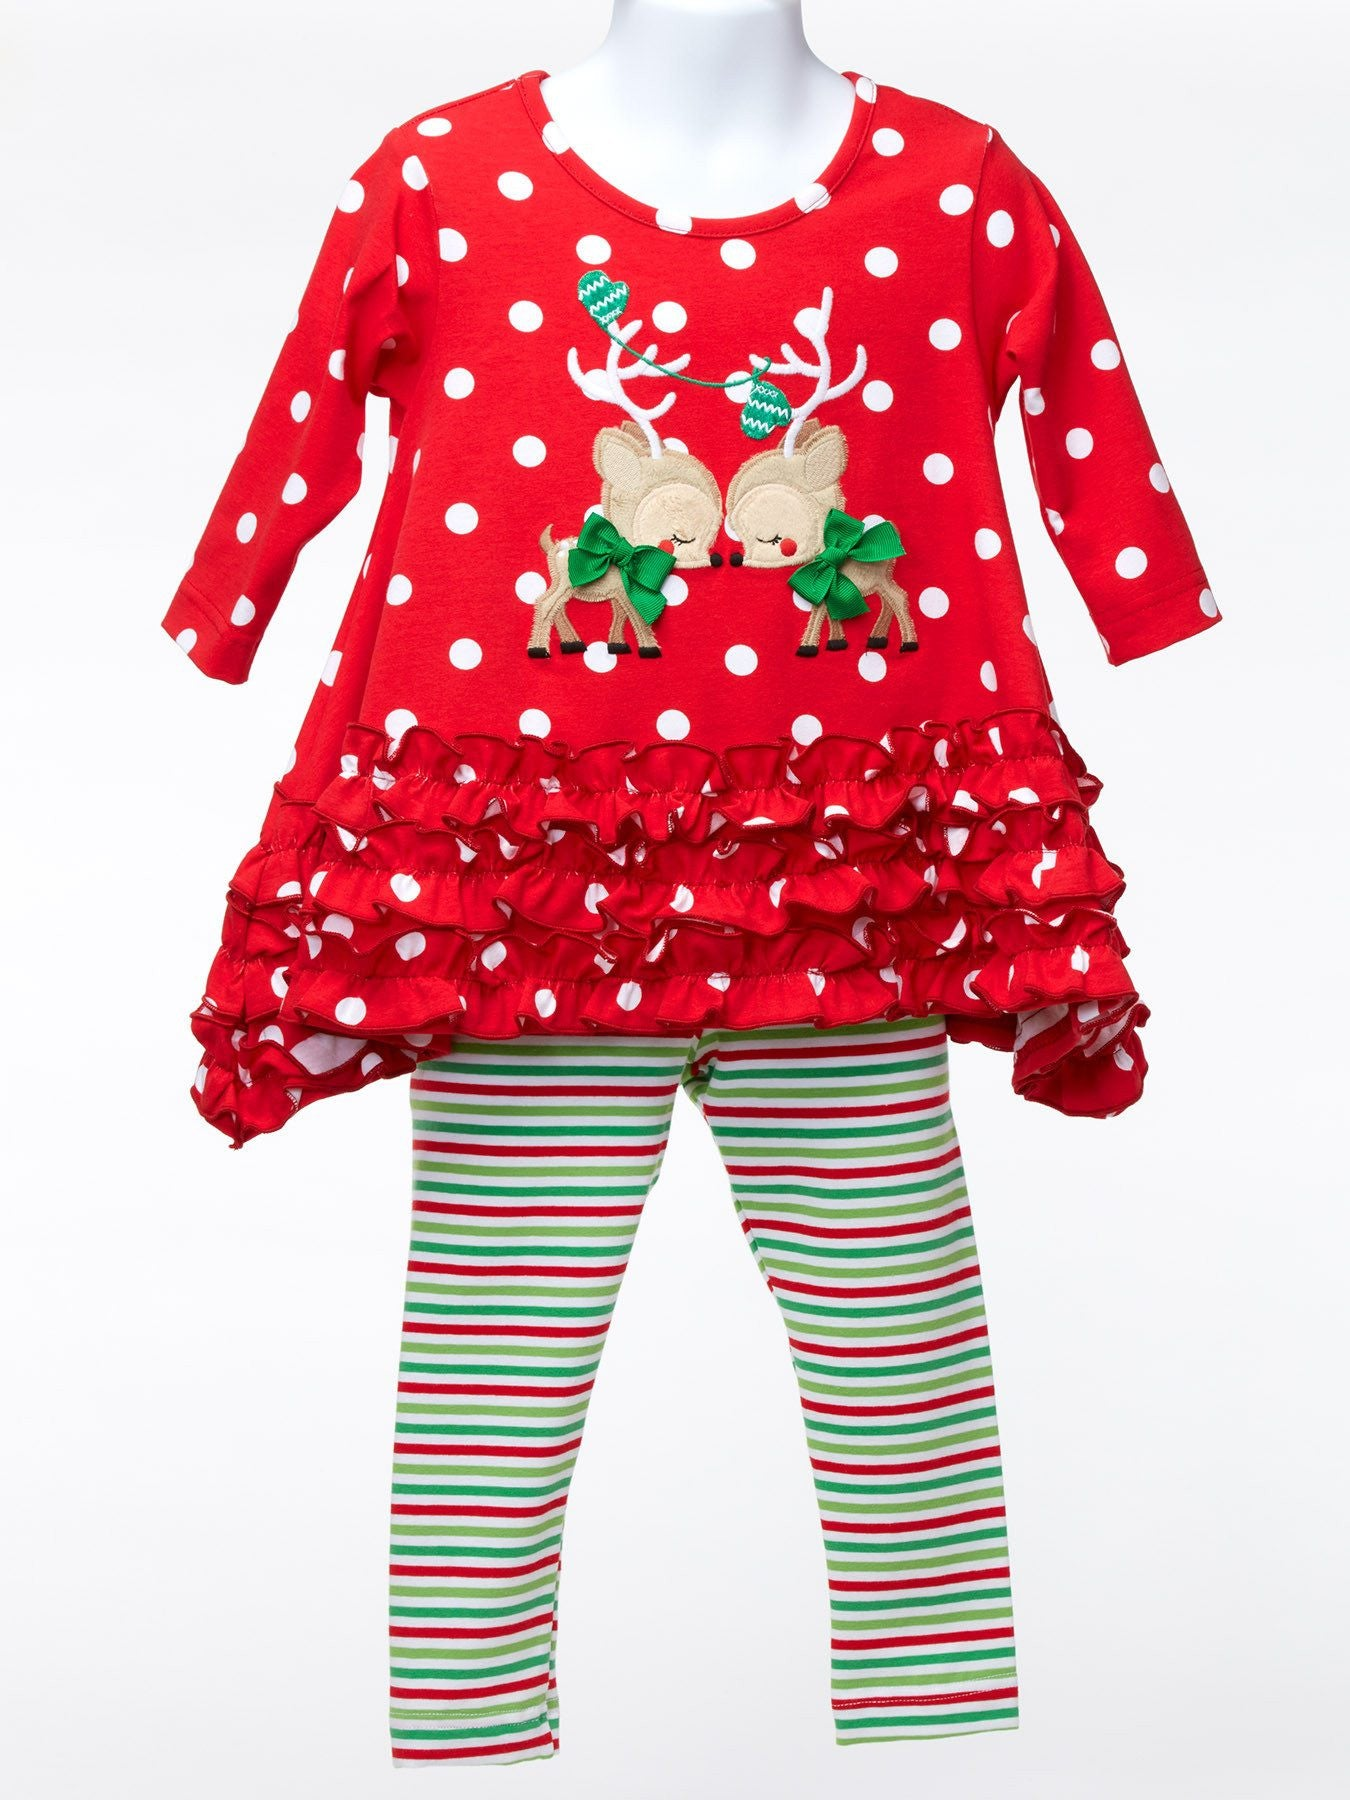 ced4c6be337d95 Toddler Red PolkaDot Reindeer Christmas Outfit – Ootza Wootza